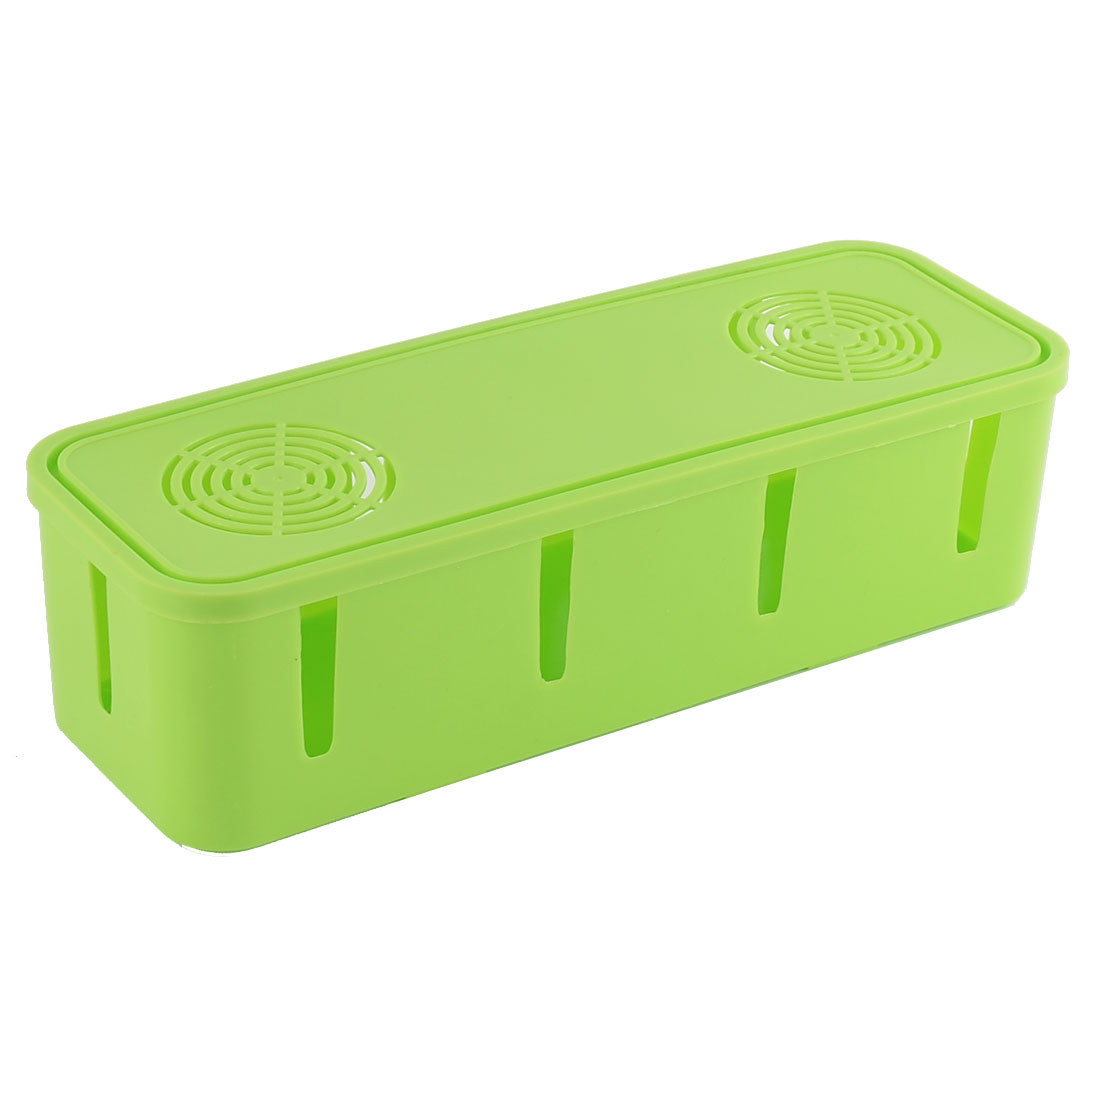 Home Office Plastic Rectangle Design Power Cord Socket Storage Case Box Green